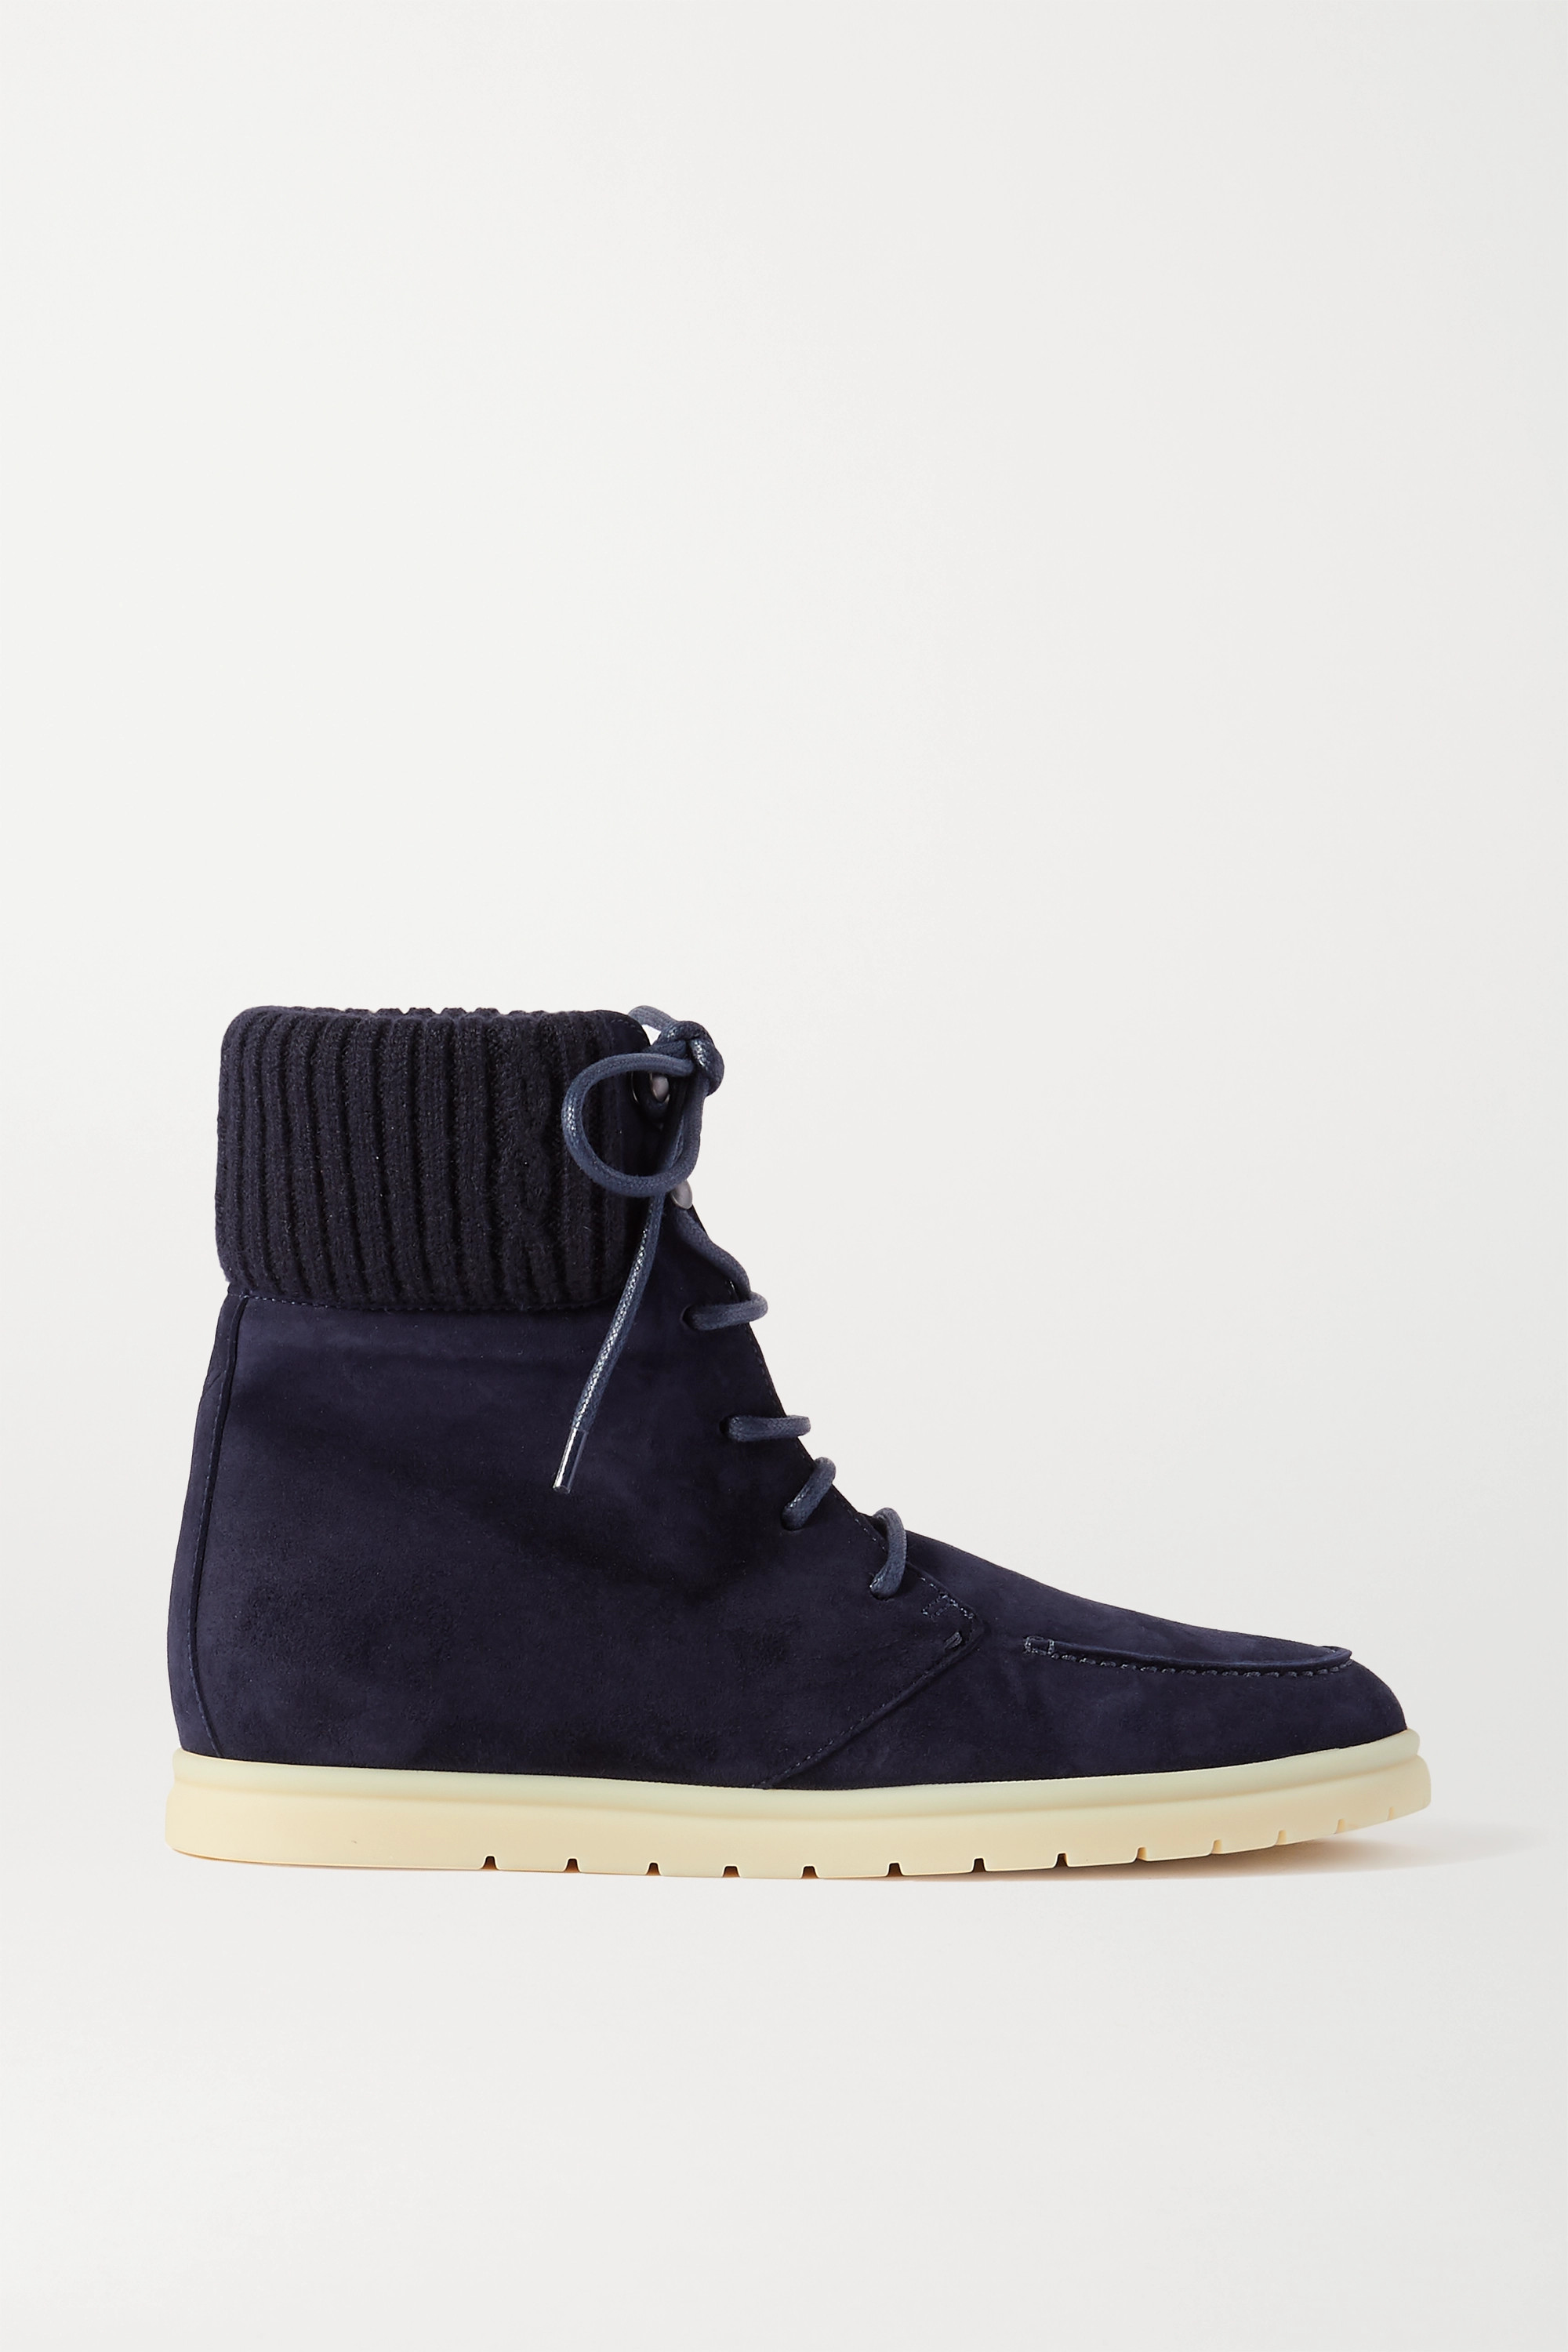 Loro Piana Ontario ribbed cashmere-trimmed suede ankle boots